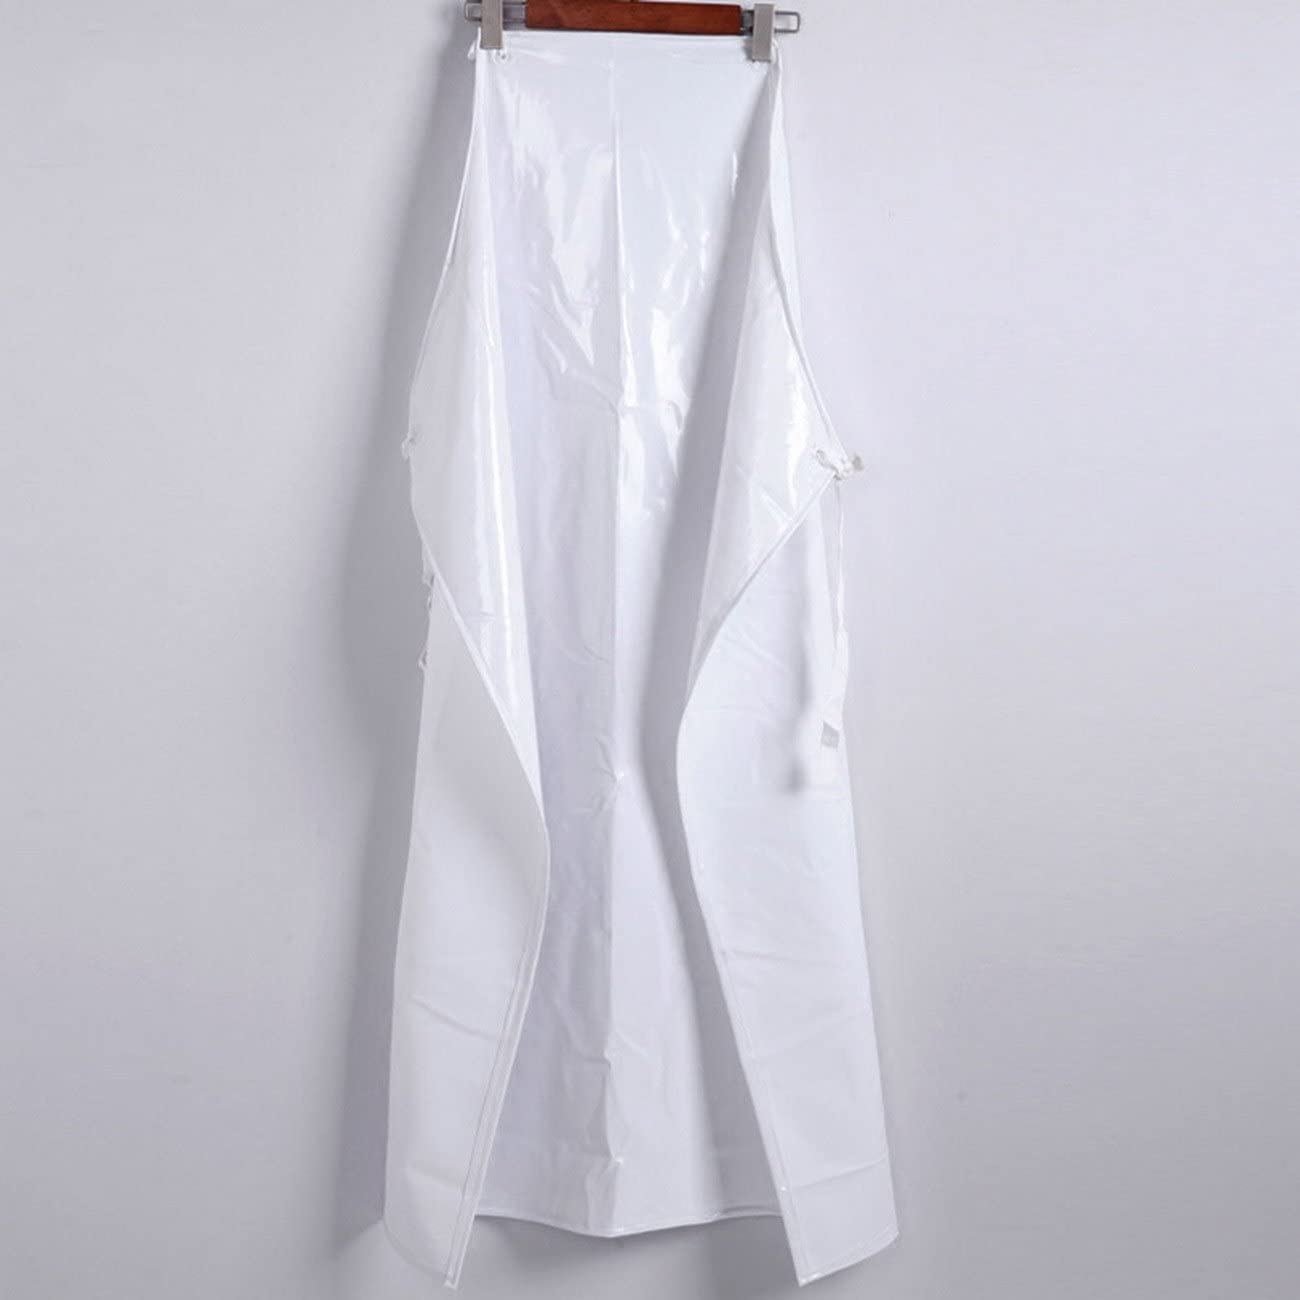 geranjie White waterproof sleeveless pvc aprons thick acid slaughterhouse apron 110x90cm